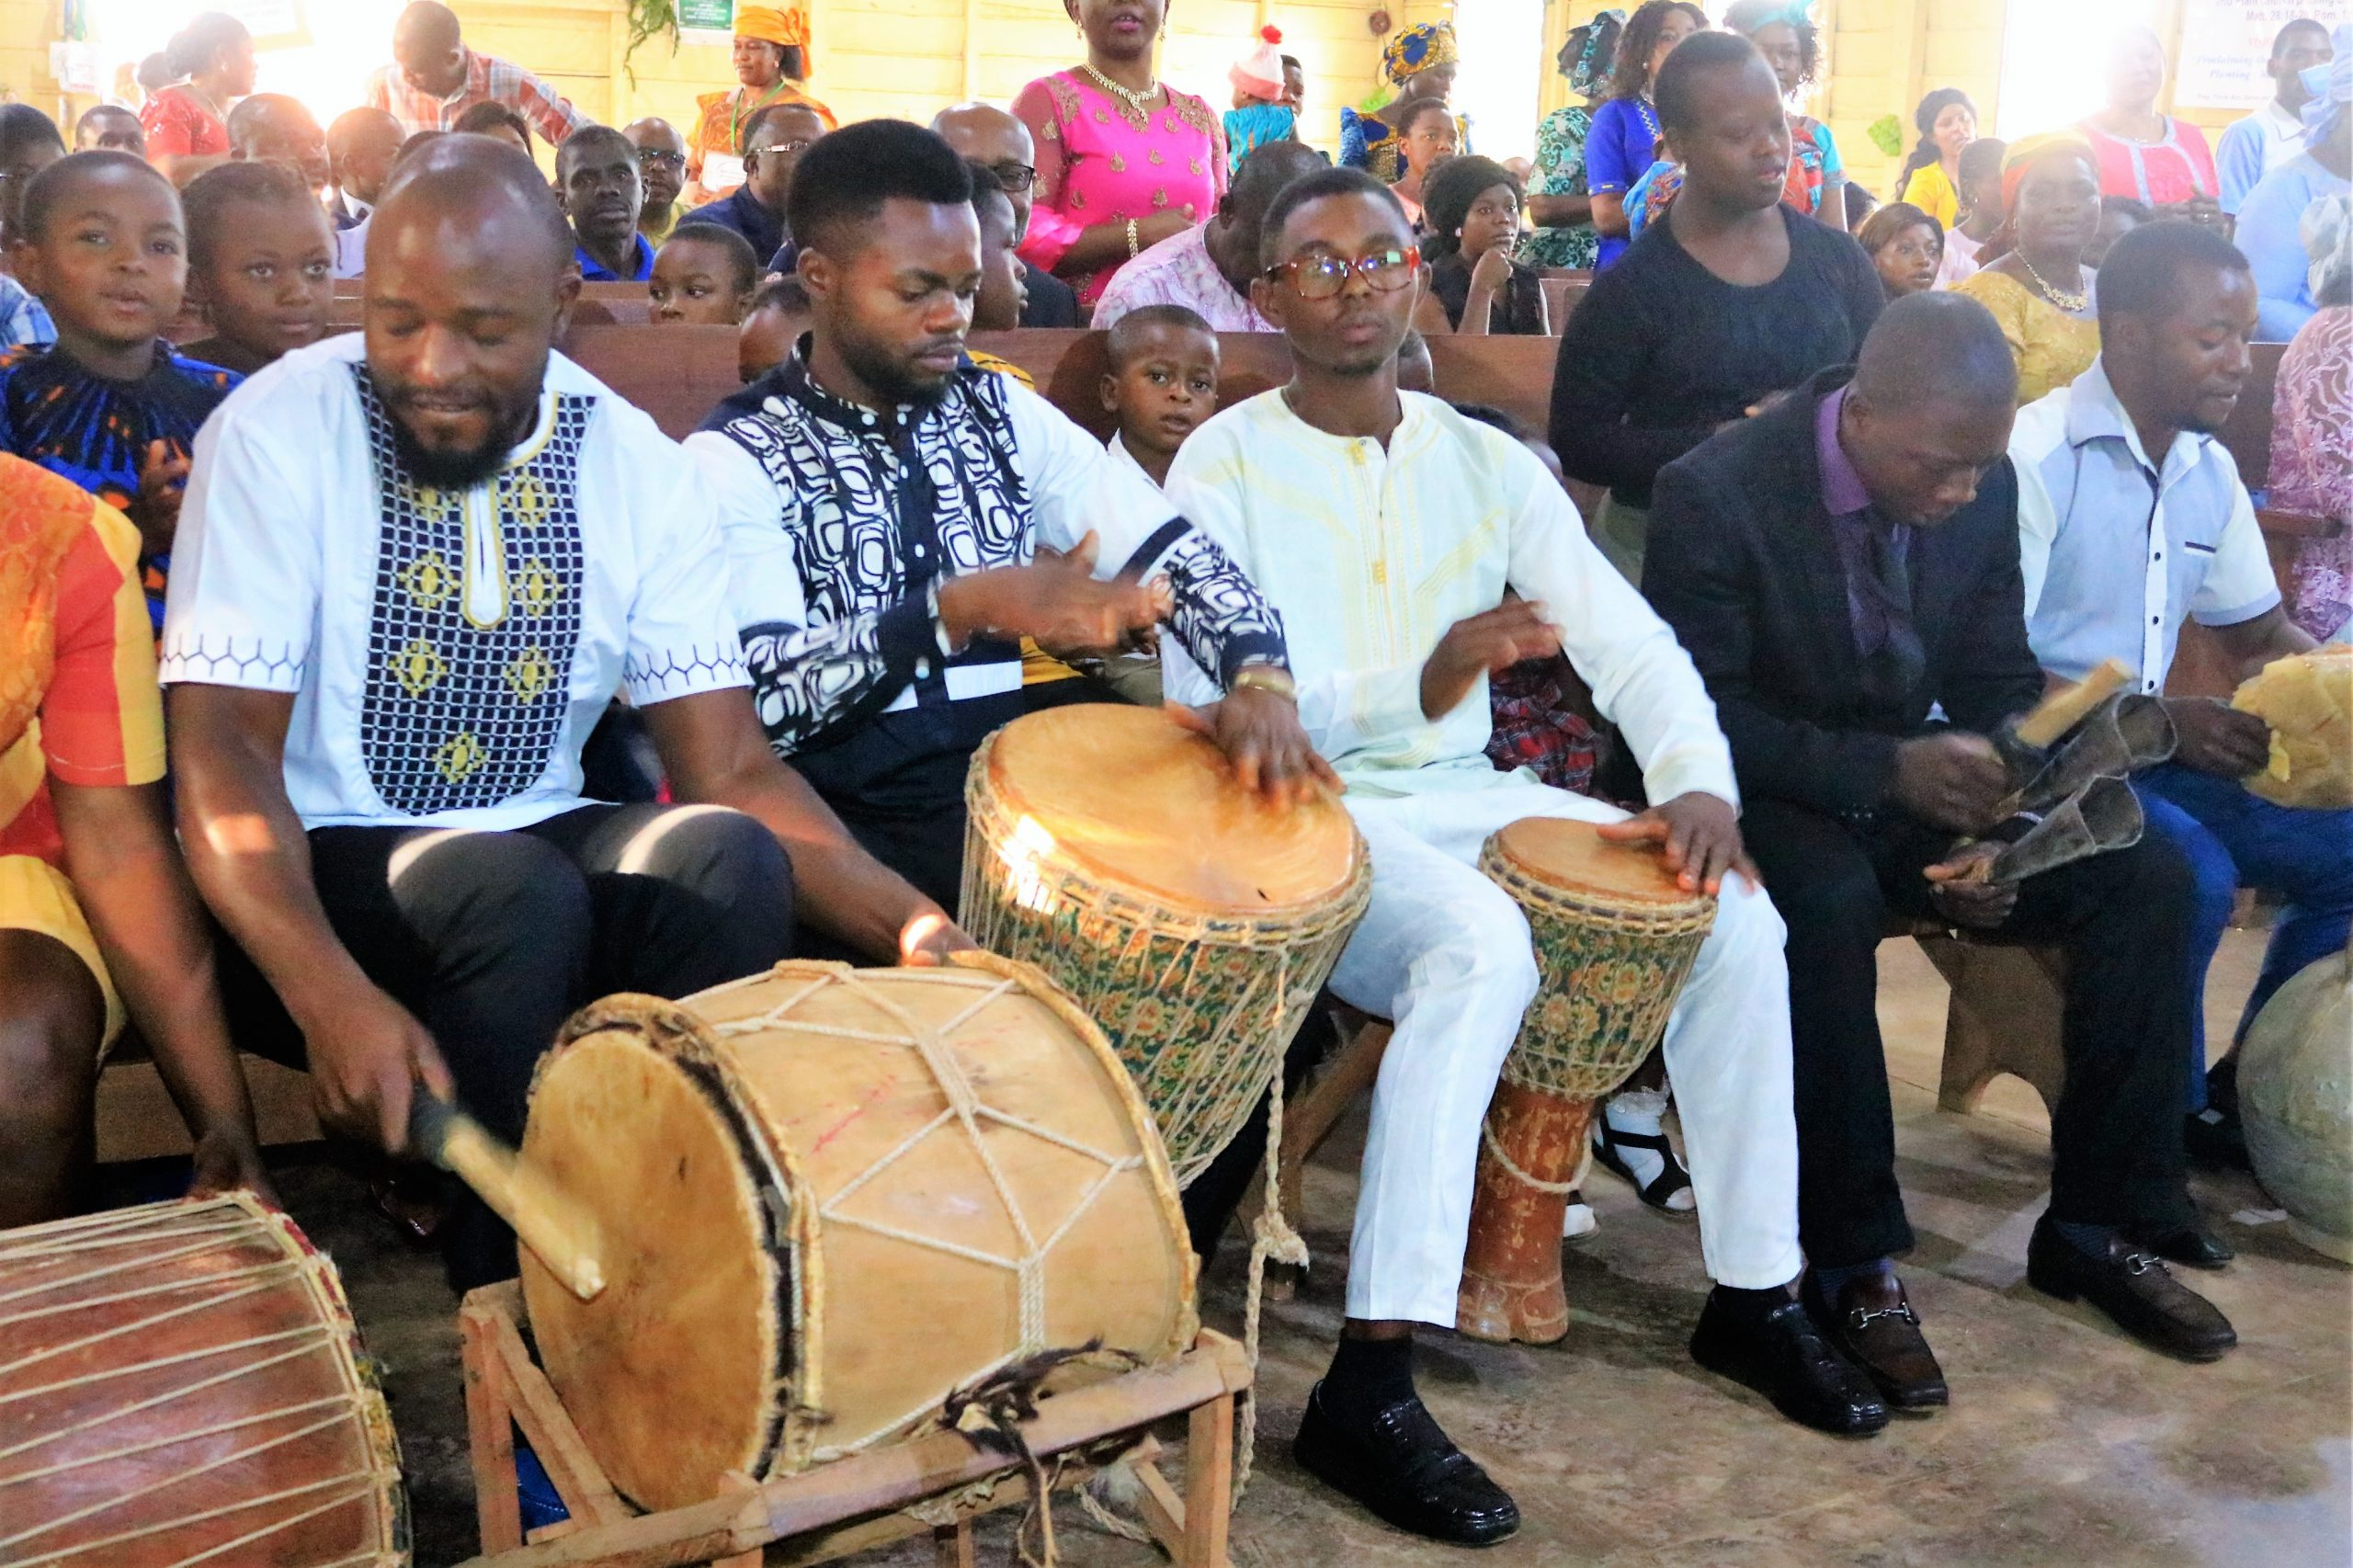 Music ministry and instrumentalists in session